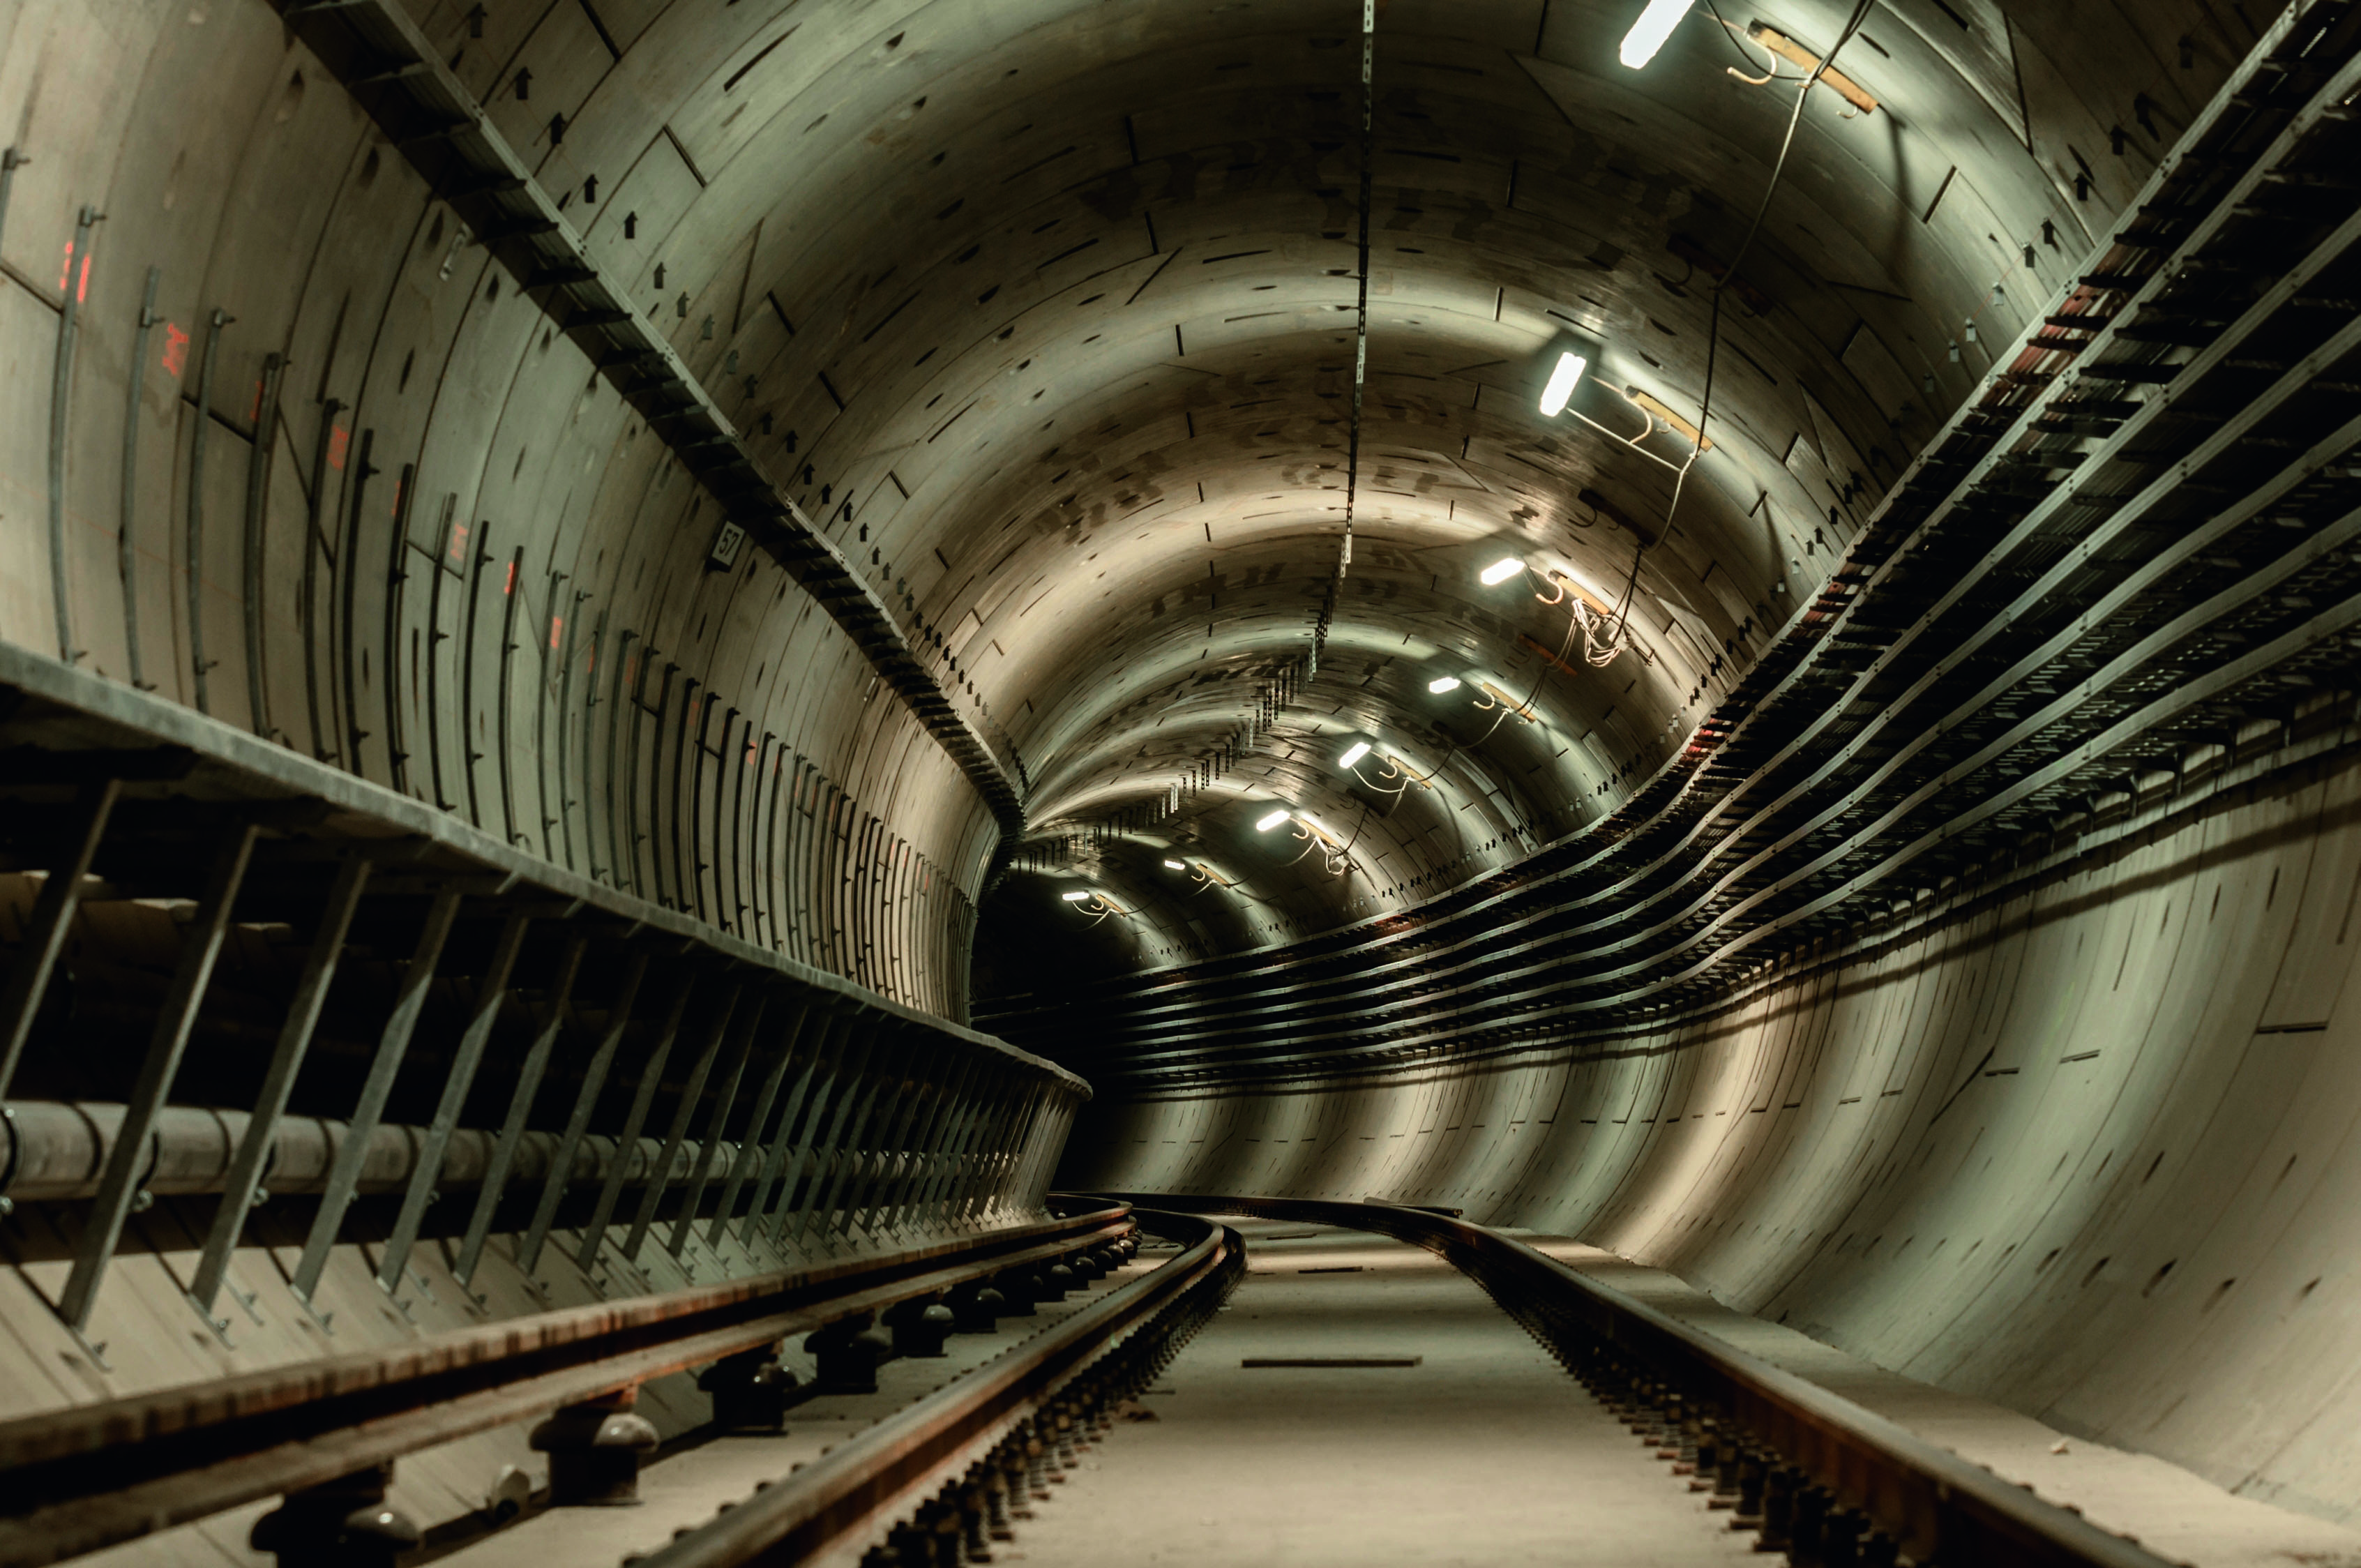 TYCO introduces Aquamist ULF for Cable Tunnel Fire Protection